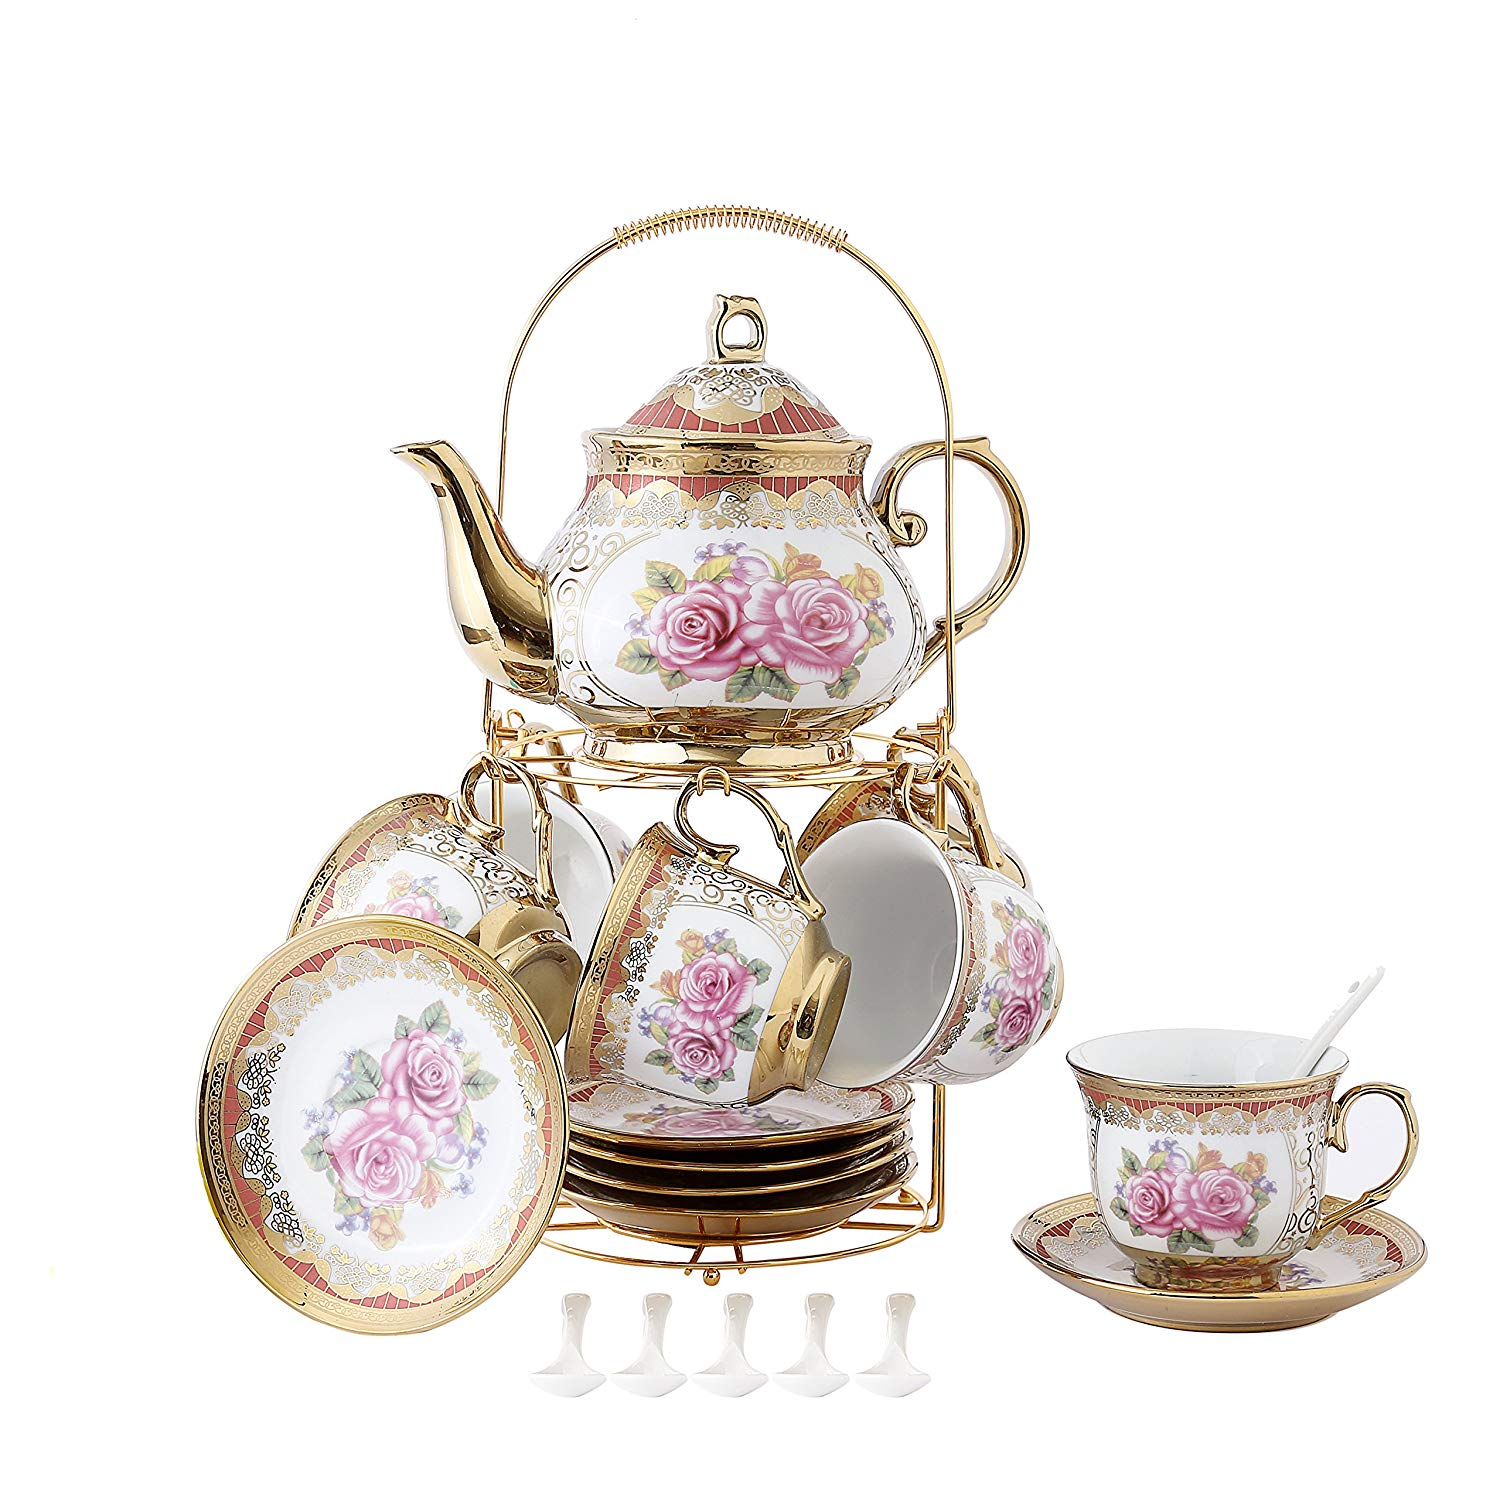 LLESS 13 Piece European Retro Titanium Ceramic Tea Set With Metal Holder, Porcelain Tea Cups Set, For Wedding, Red Rose Painting